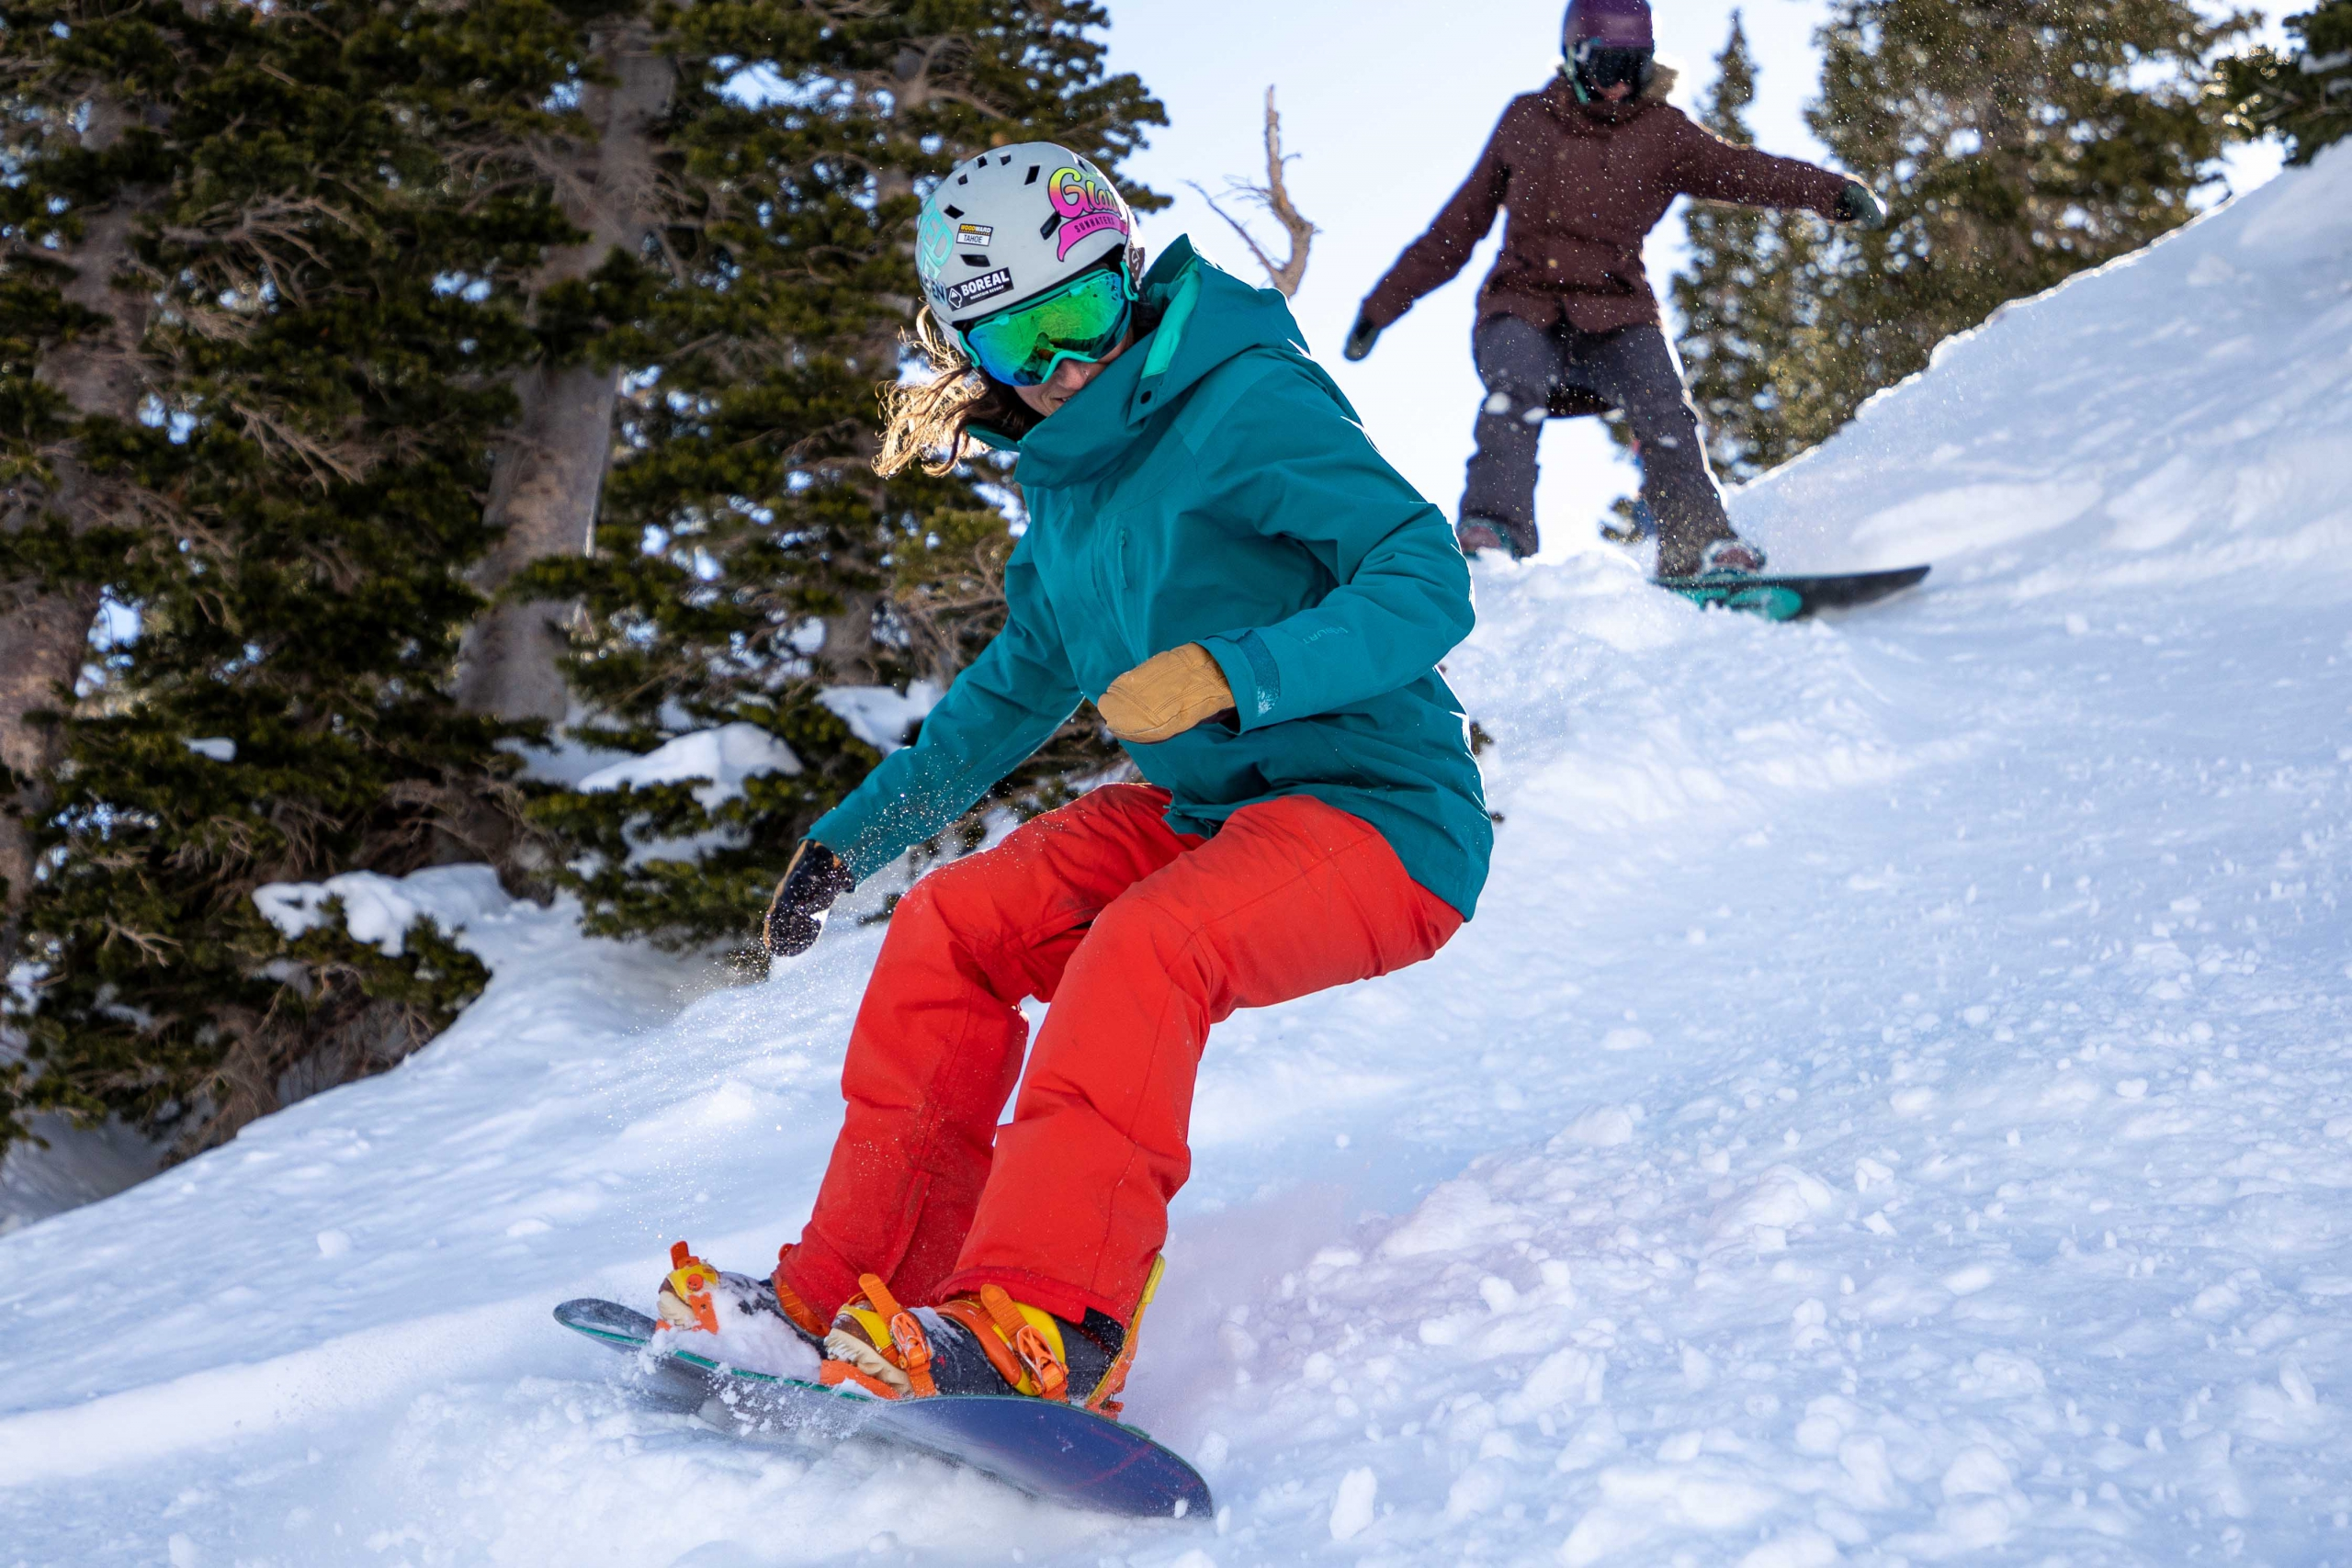 two female snowboarders shred